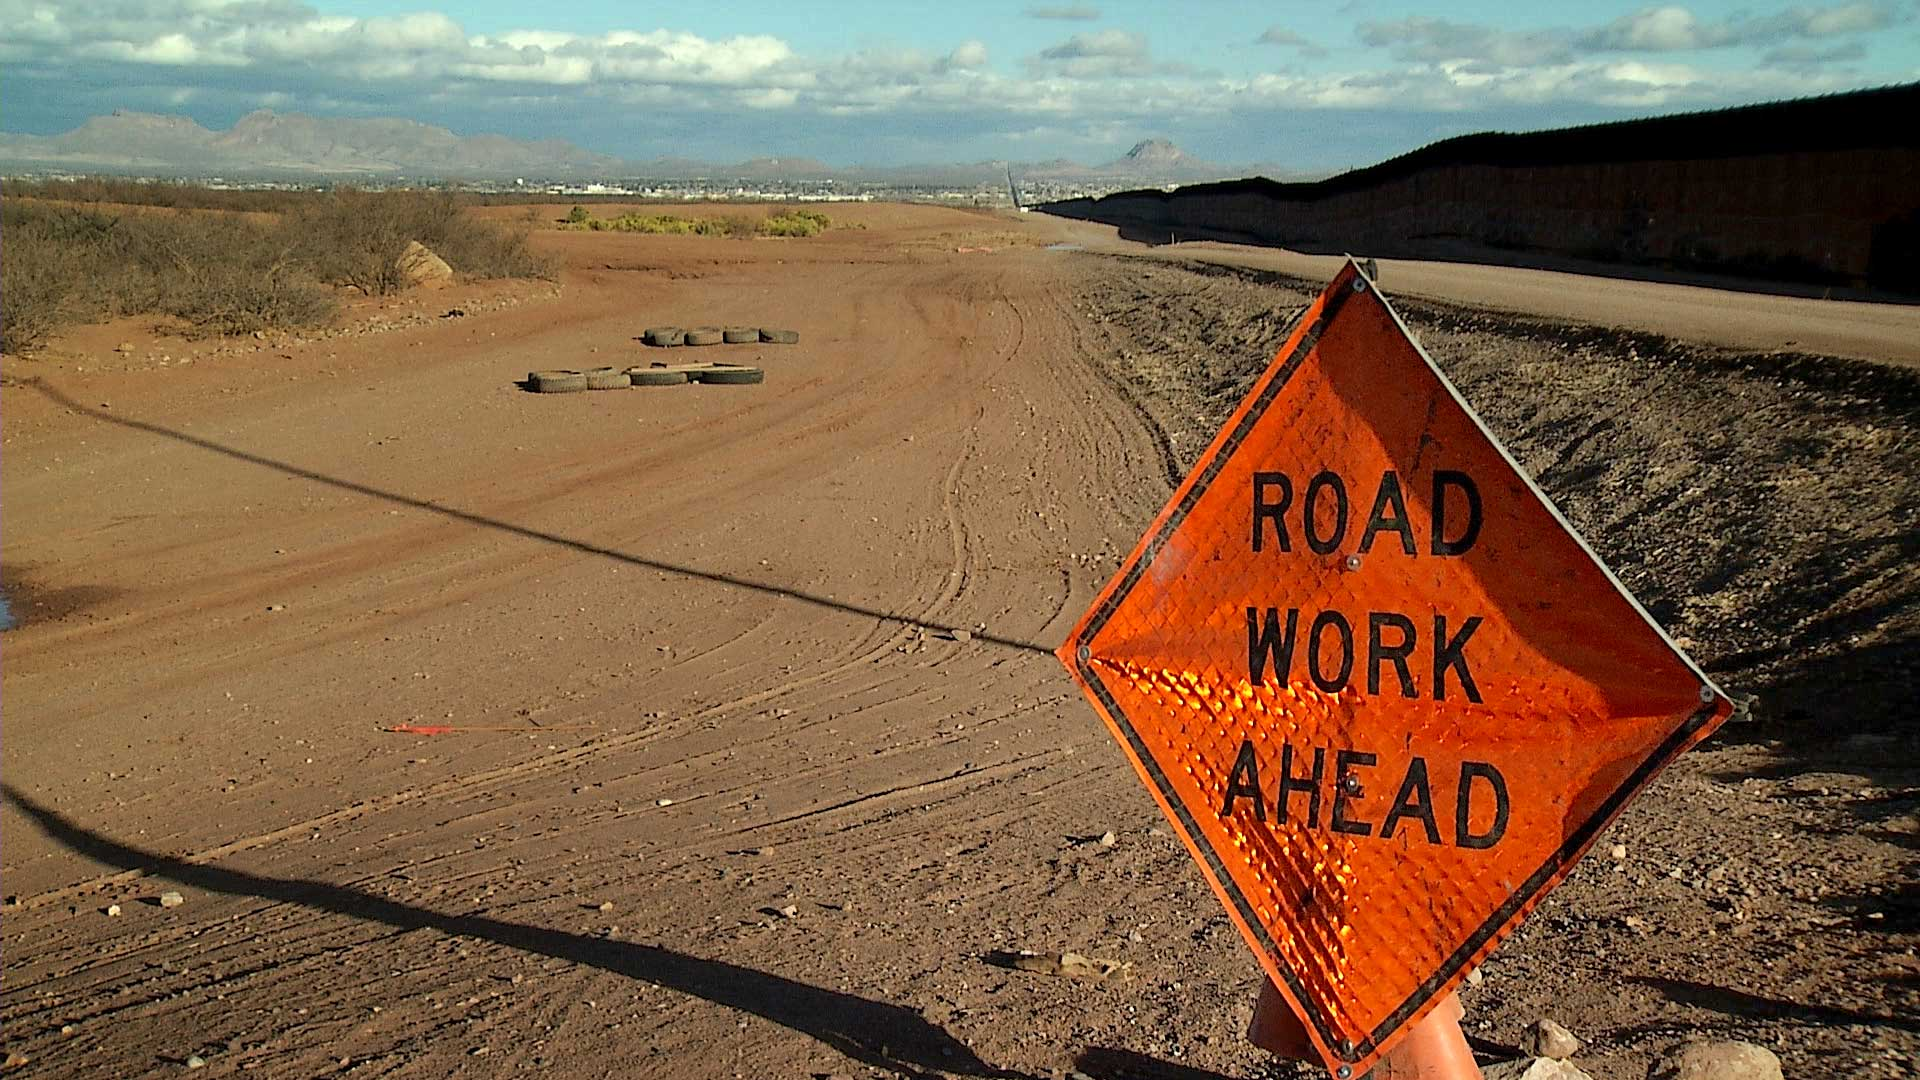 A sign indicates road work ahead along the border wall in Douglas, Ariz. January 2021.